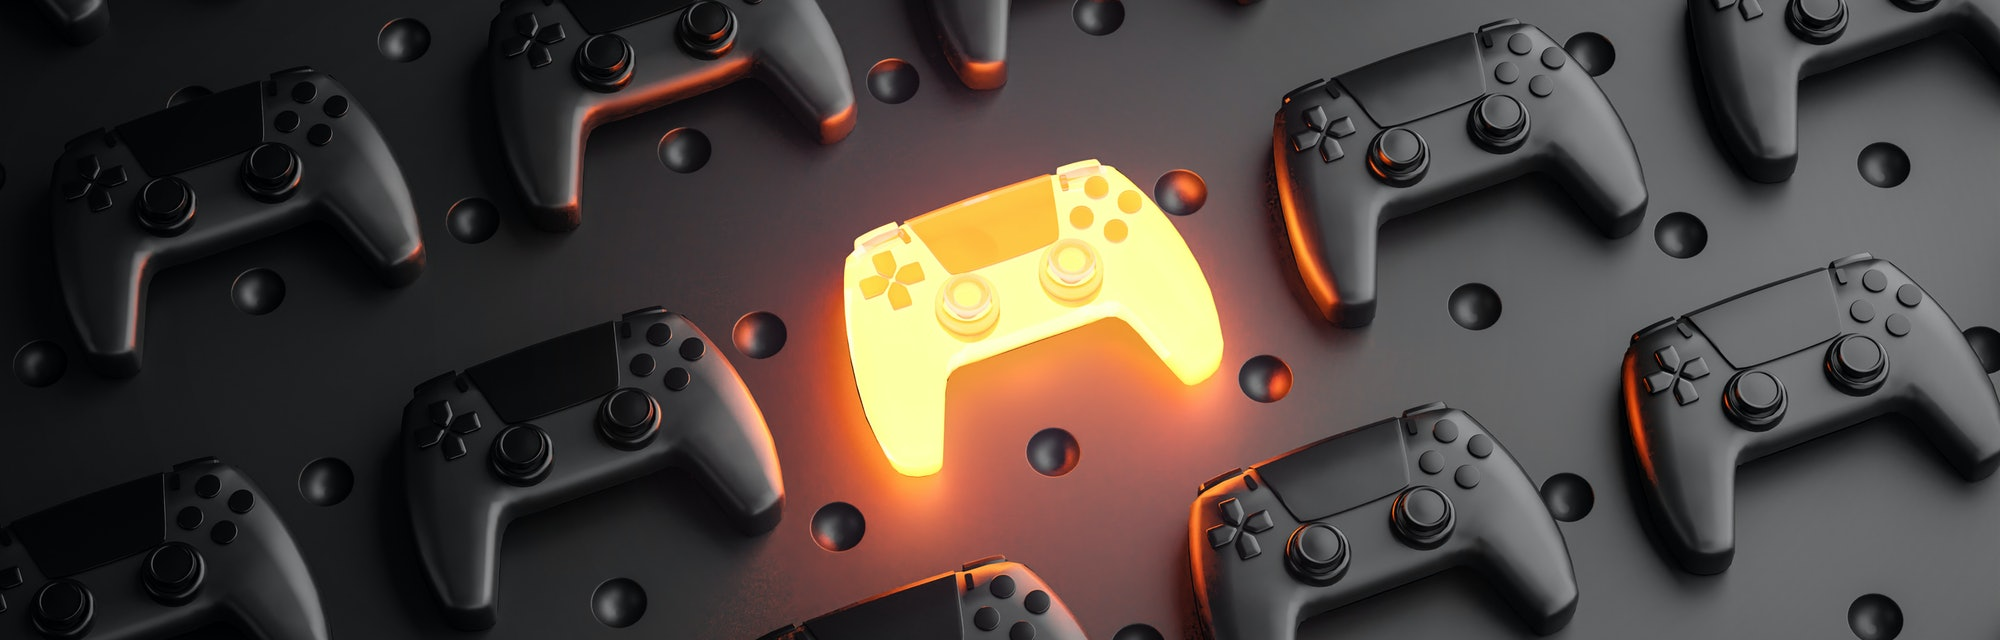 Outstanding Concept. Glowing Gamepad Between Multiple Black Joysticks Background 3D Rendering